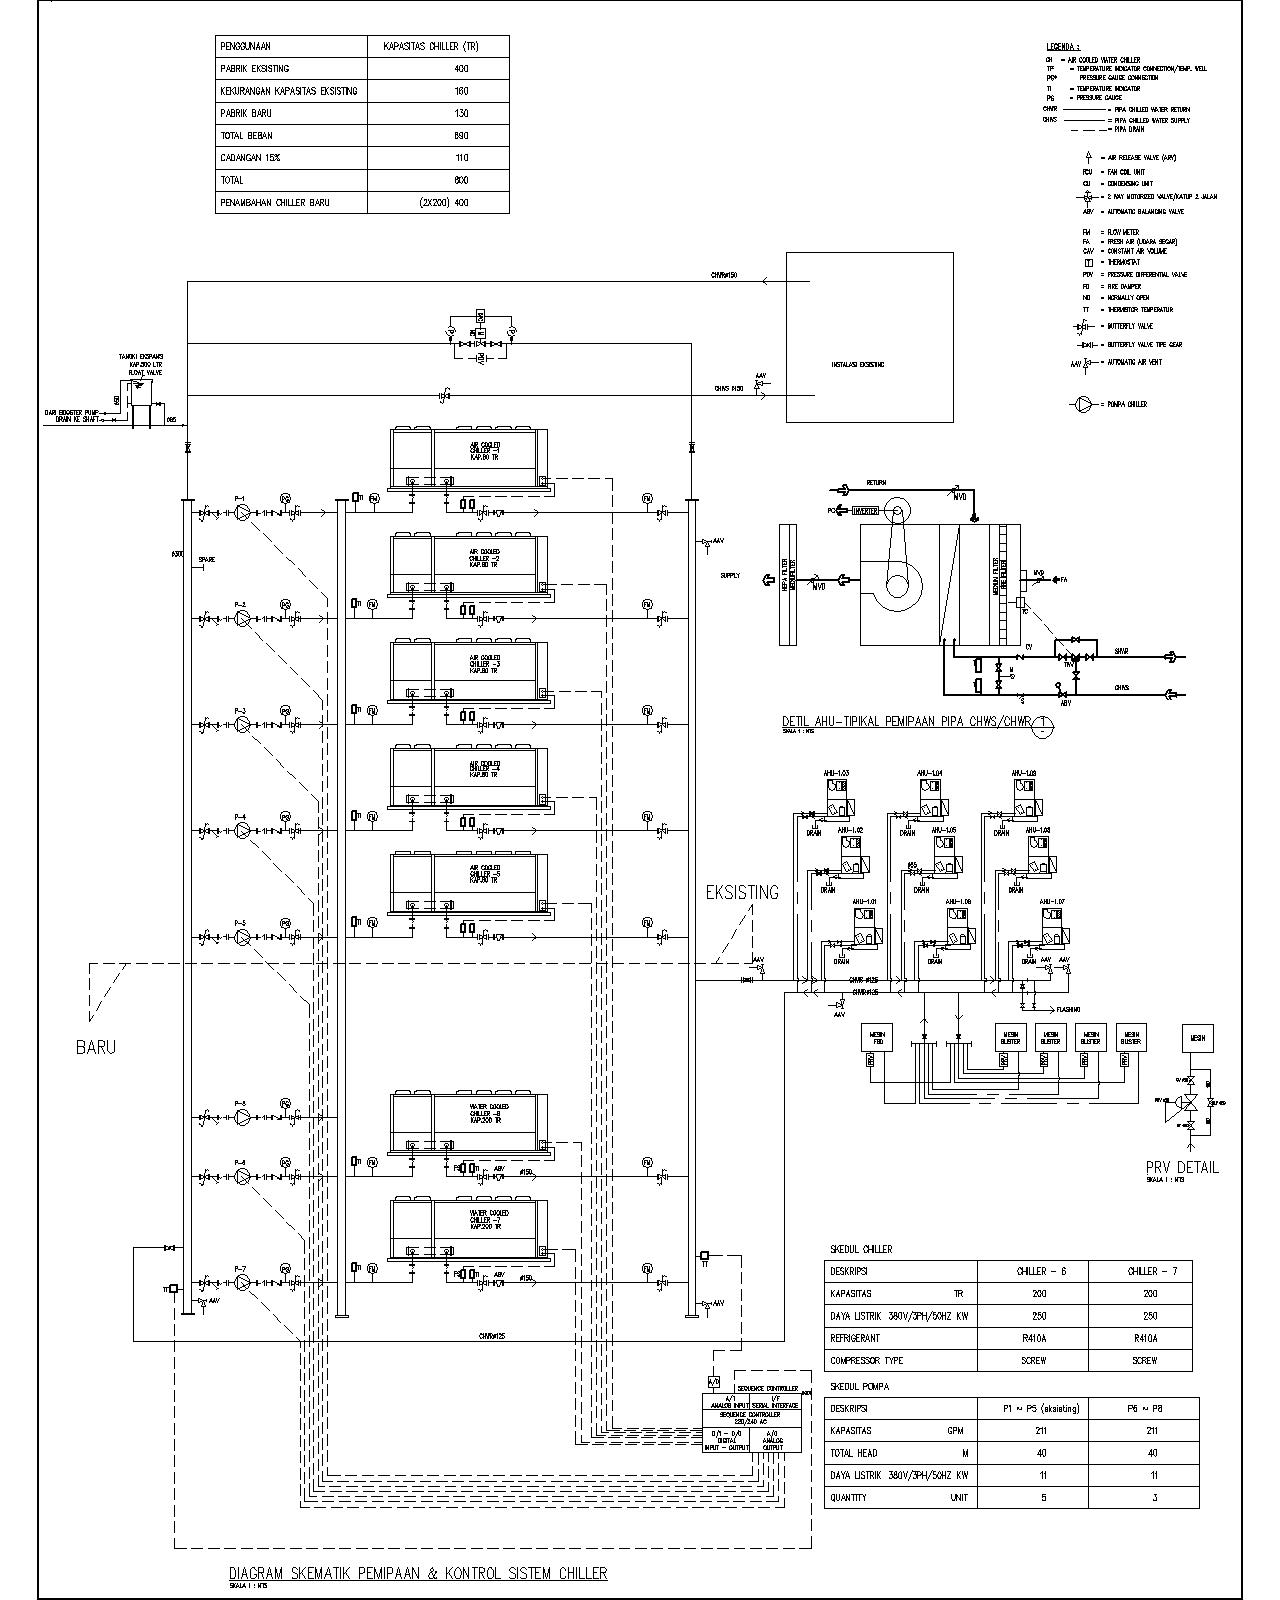 Building utilities water cooled chiller schematic diagram